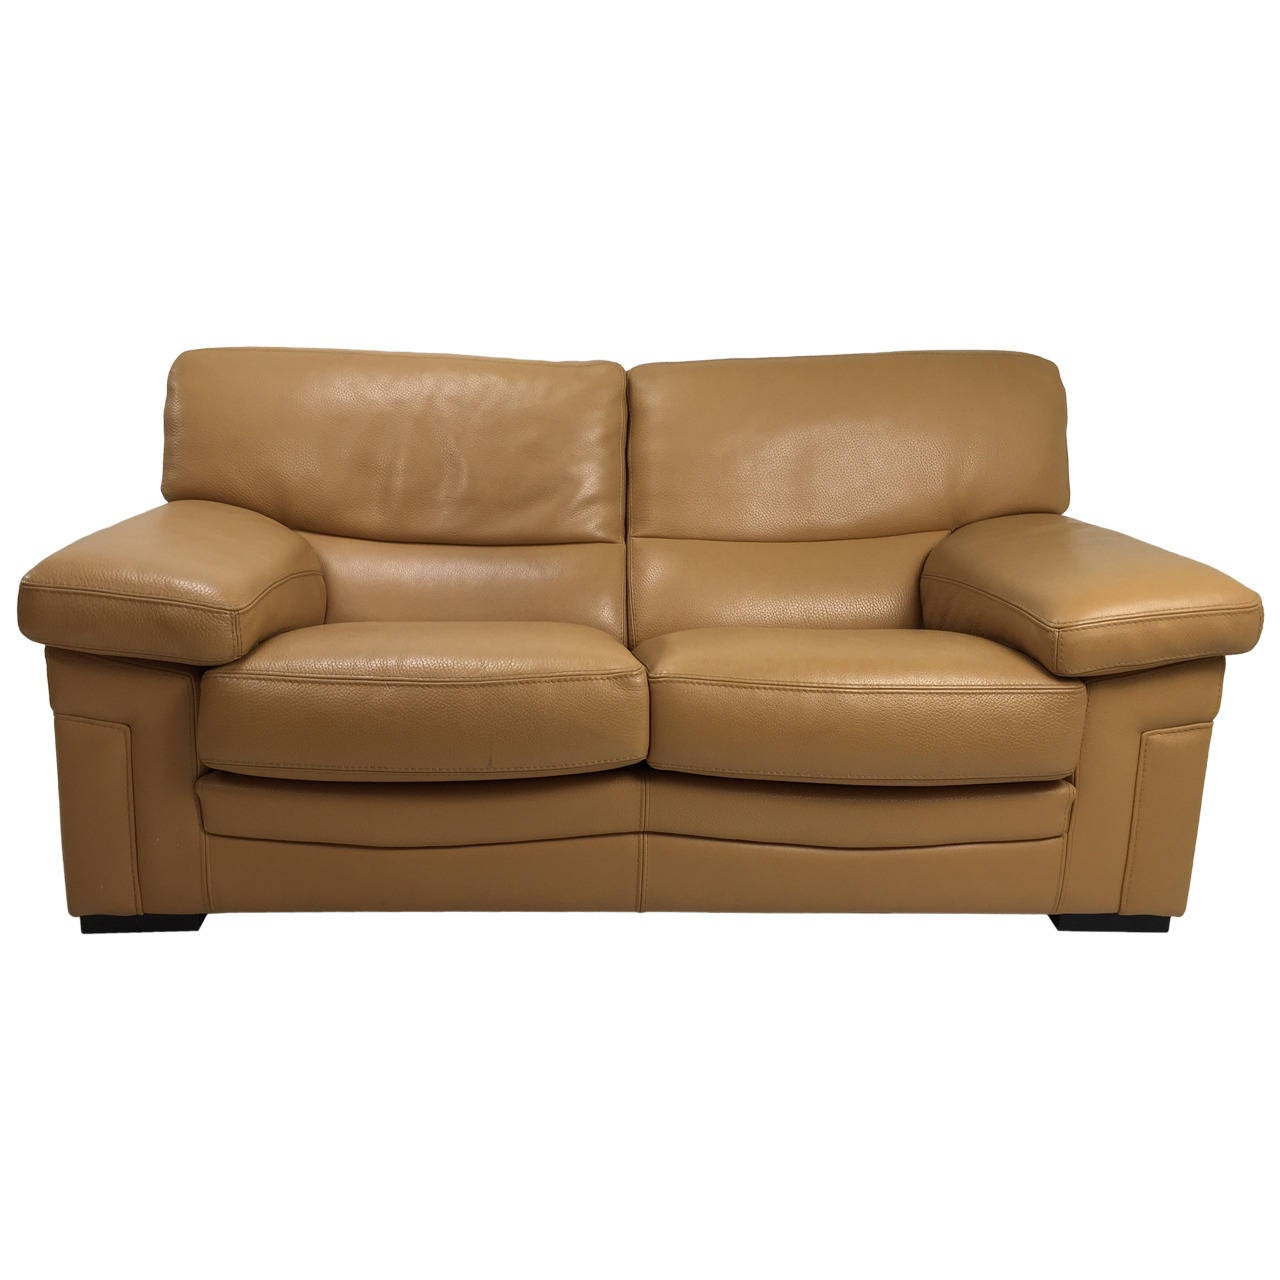 pair of roche bobois sofas in caramel leather at 1stdibs. Black Bedroom Furniture Sets. Home Design Ideas